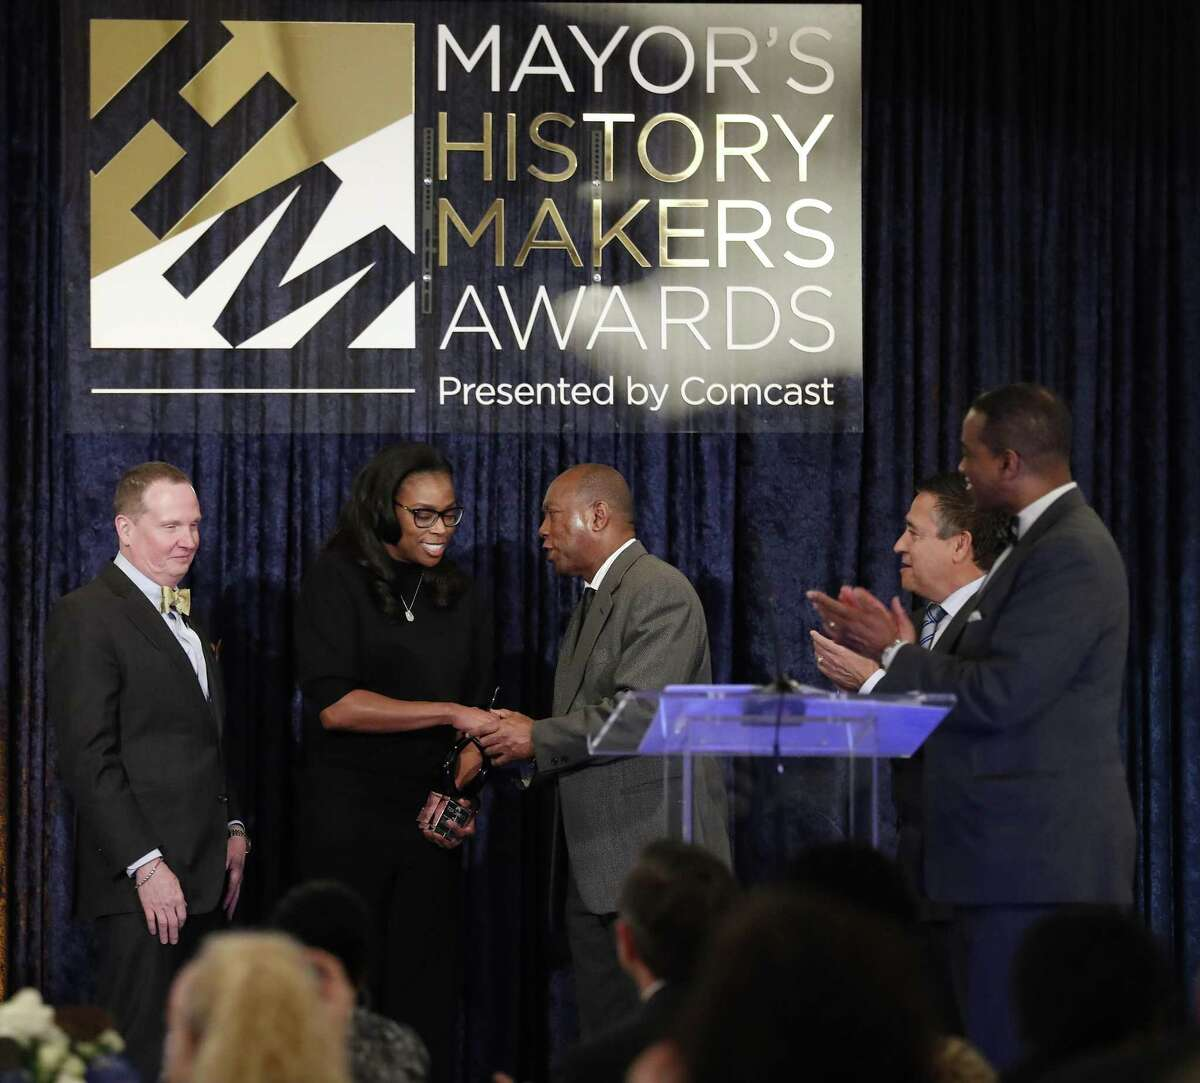 Honoree Tiffany Sanders during the Mayor Sylvester Turner's second annual History Makers Awards at the Houstonian Hotel, Friday, Feb. 8, 2019, in Houston.